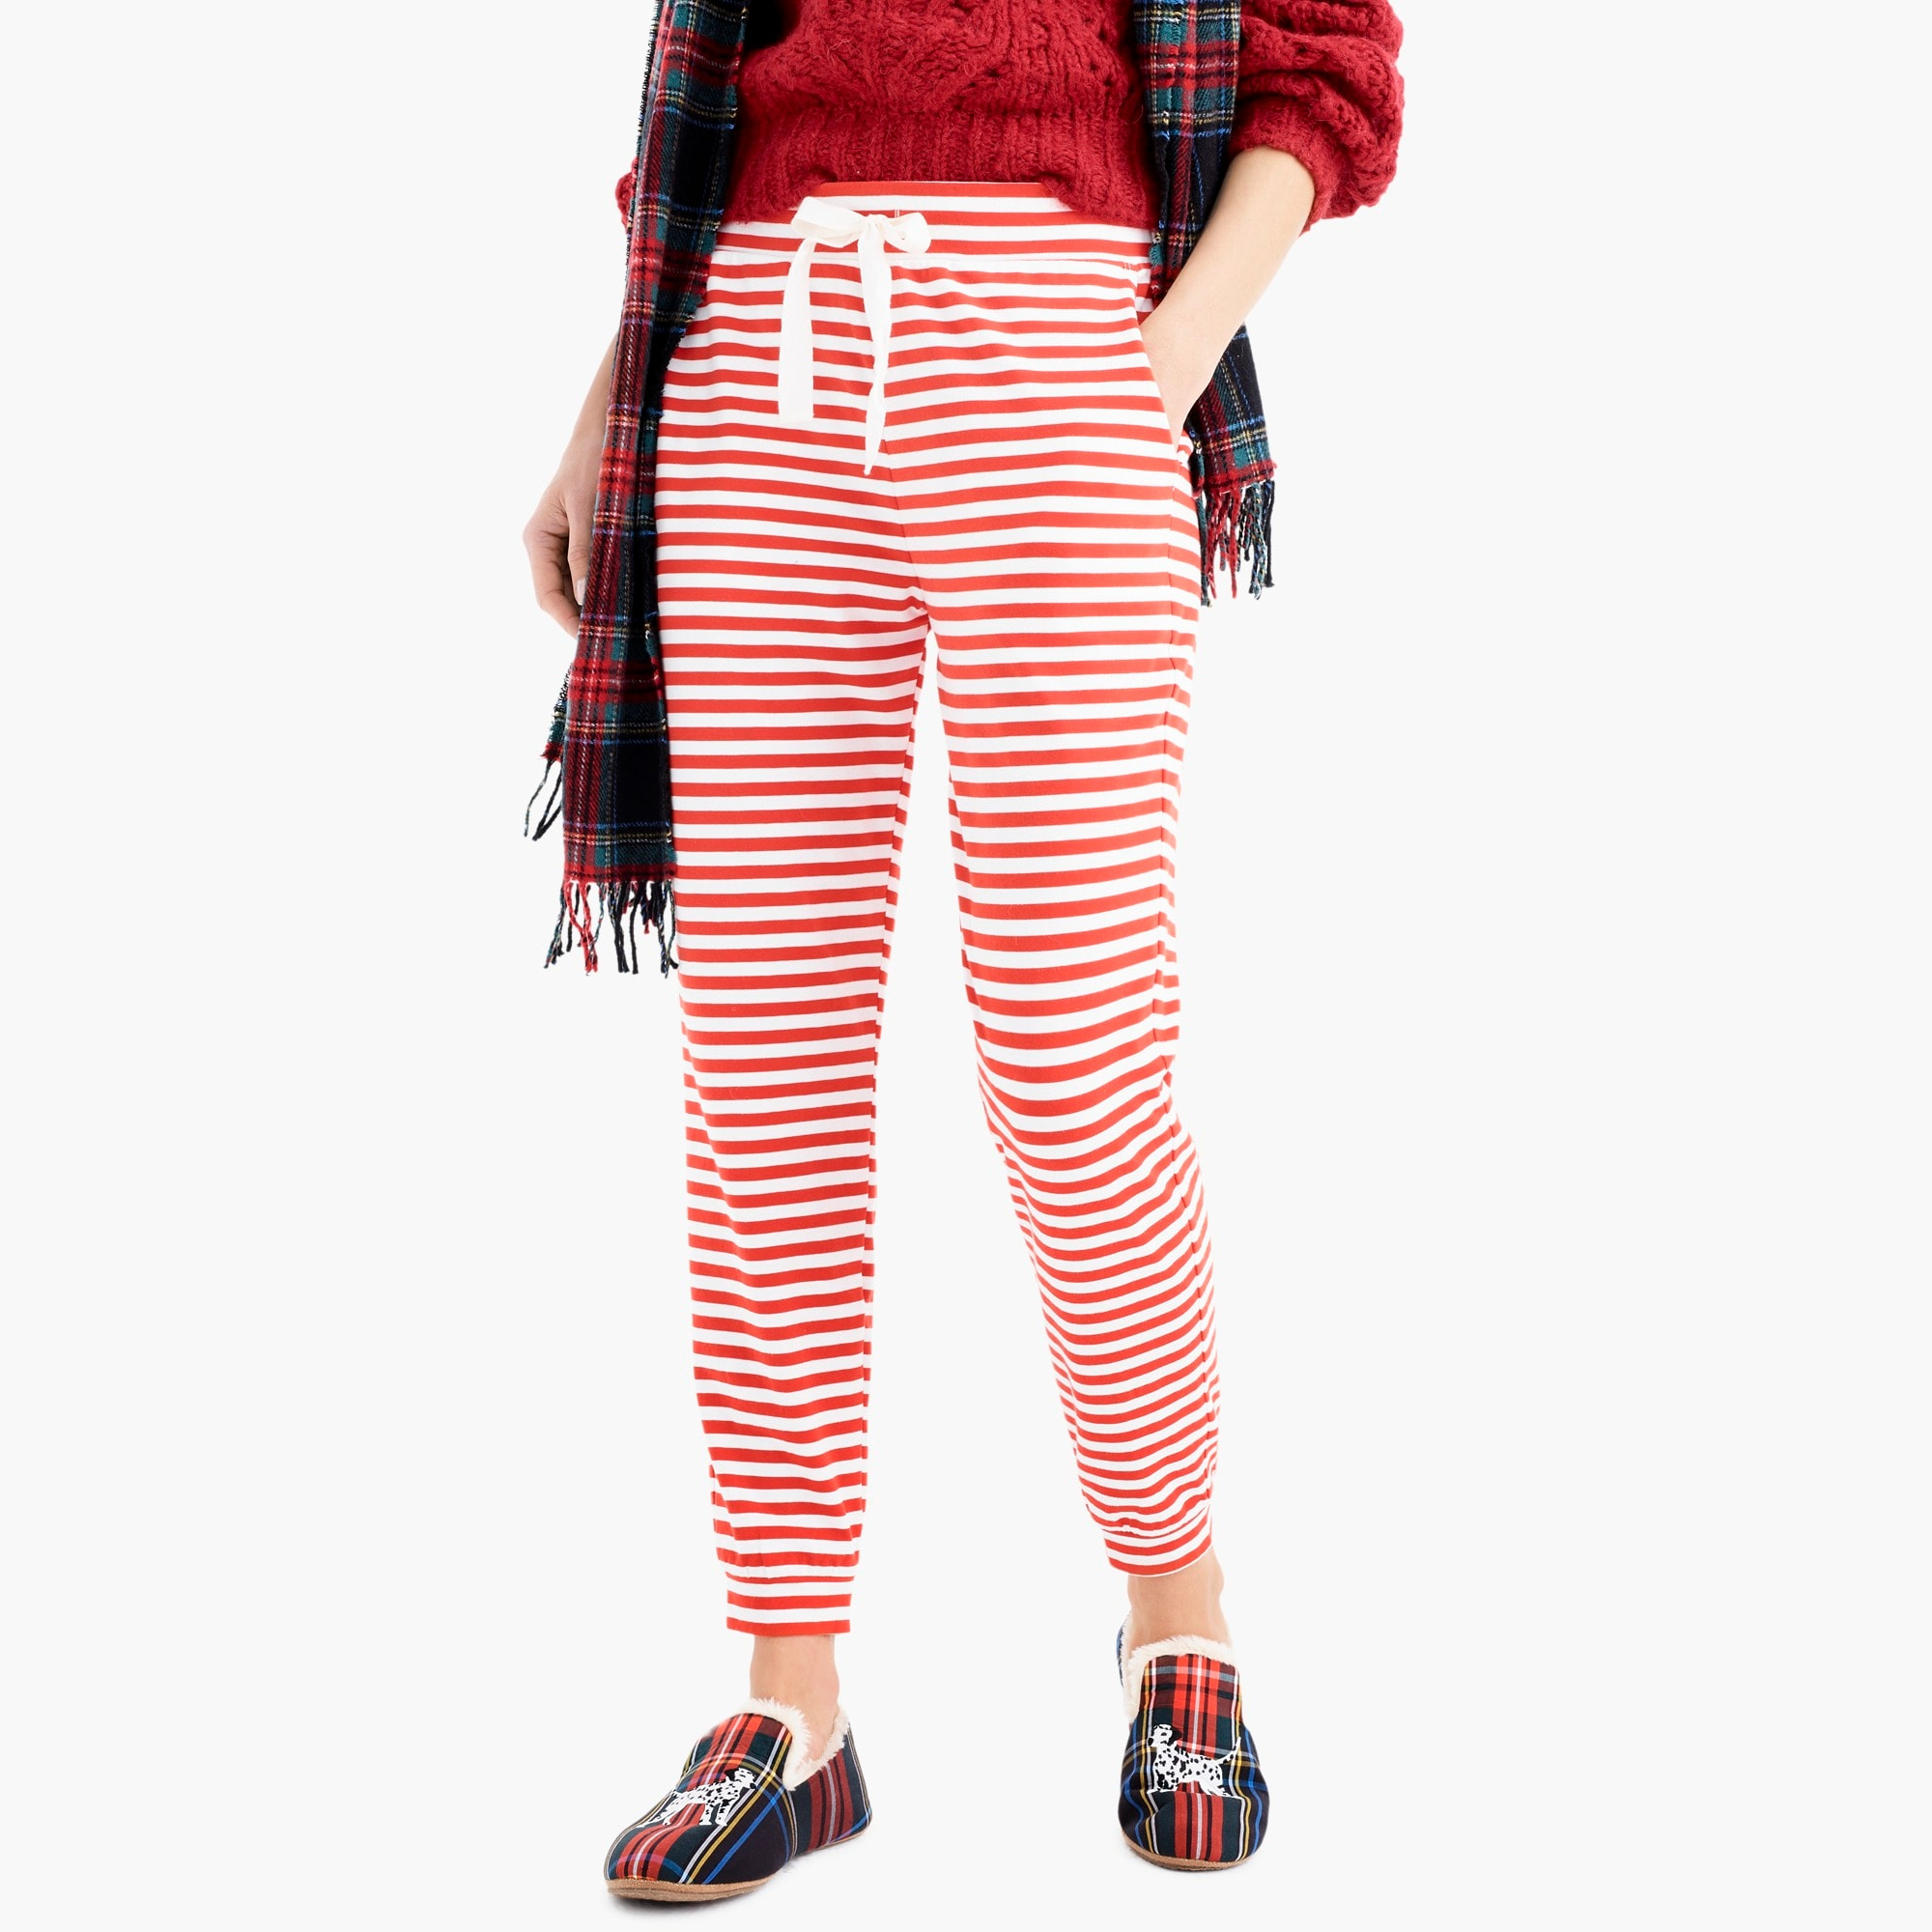 Image 1 for Dreamy pajama jogger pant